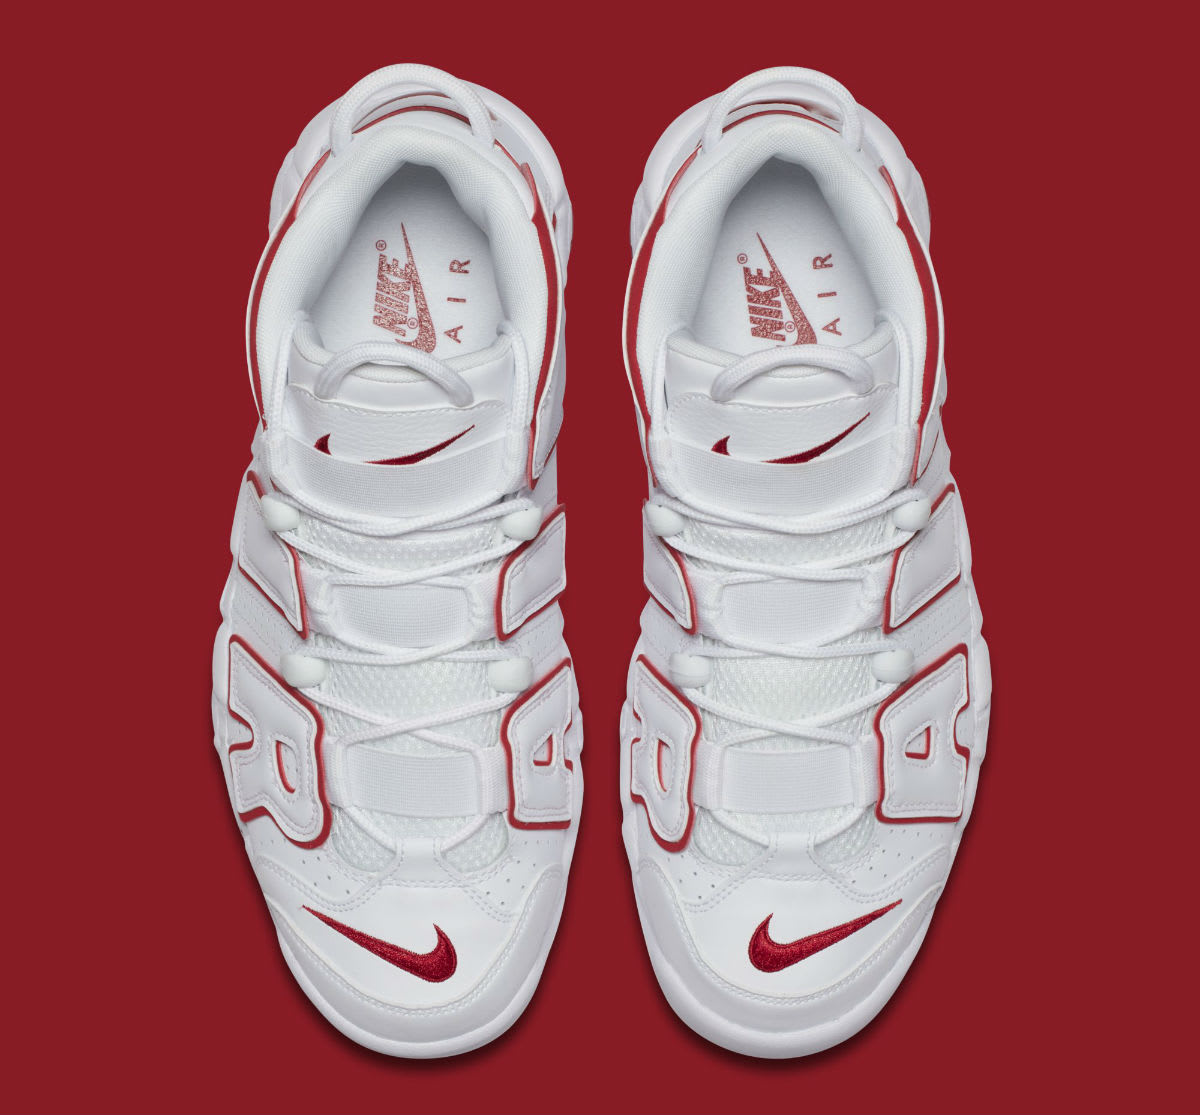 Nike Air More Uptempo Varsity Red Release Date 921948-102 Top